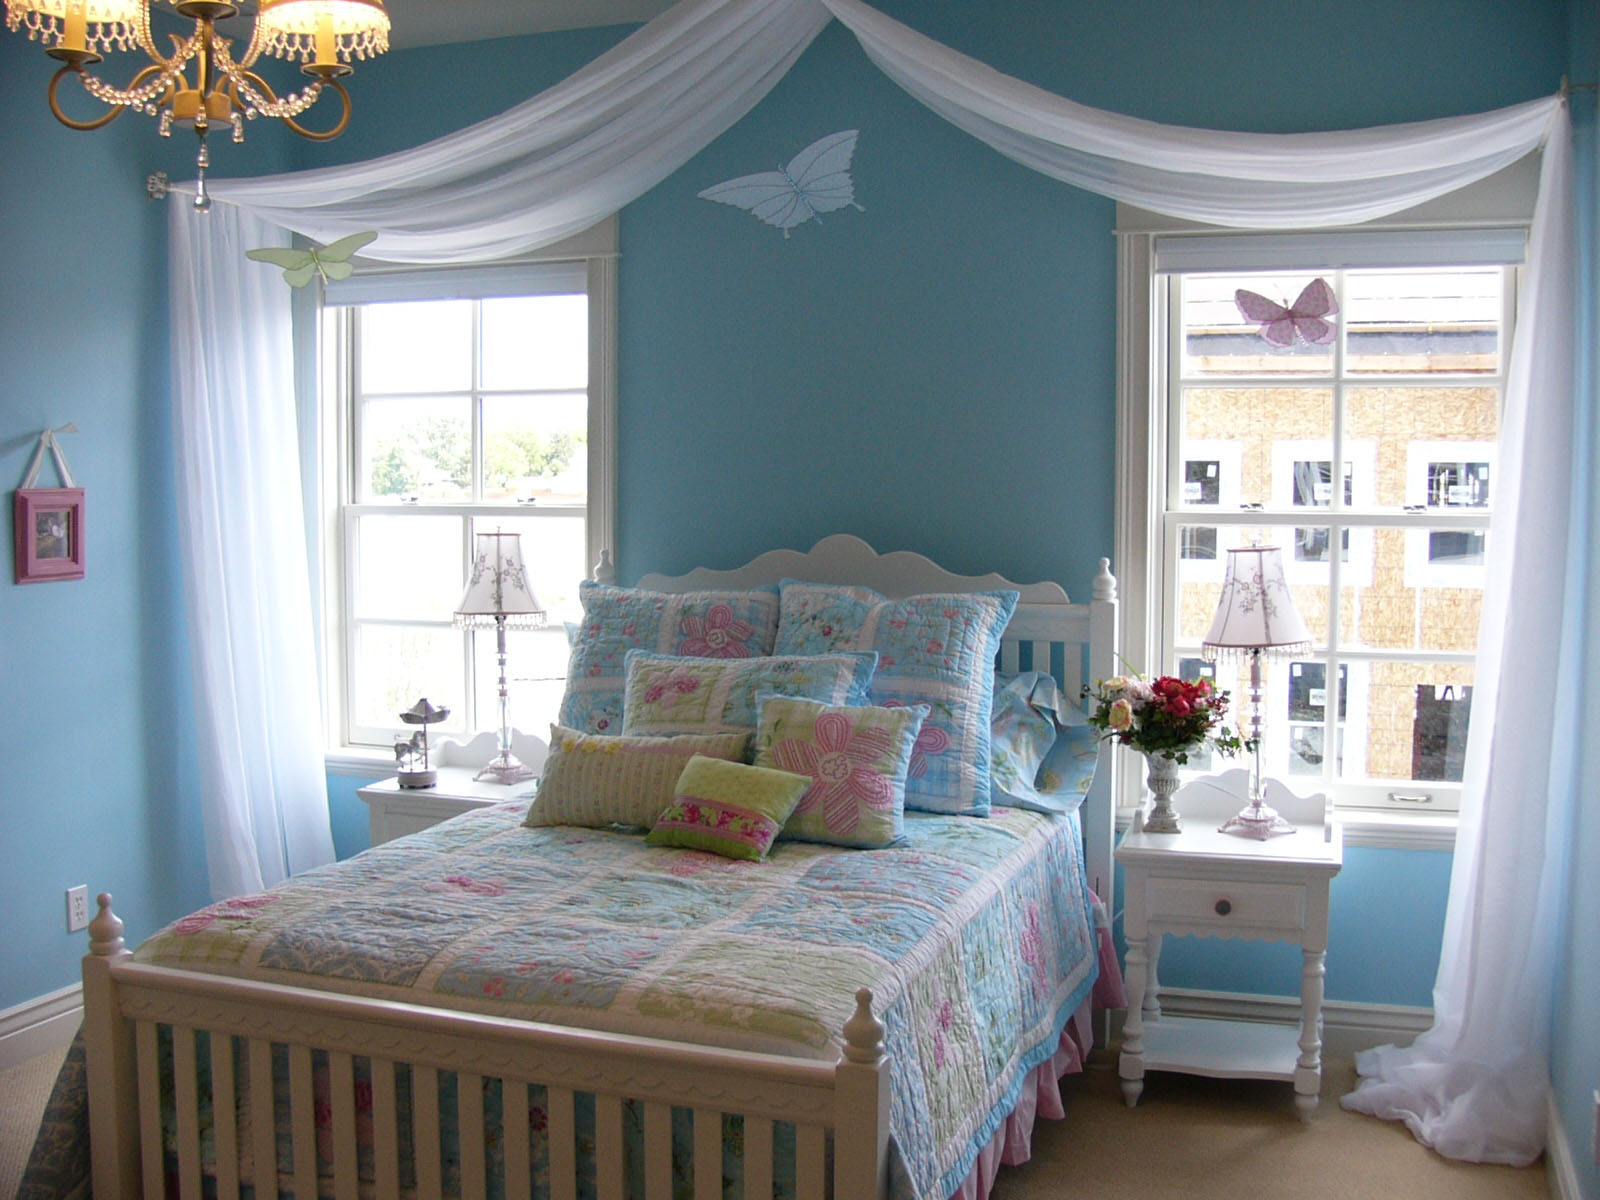 Blue Room Decorating Tips  The Green Apple Design Company